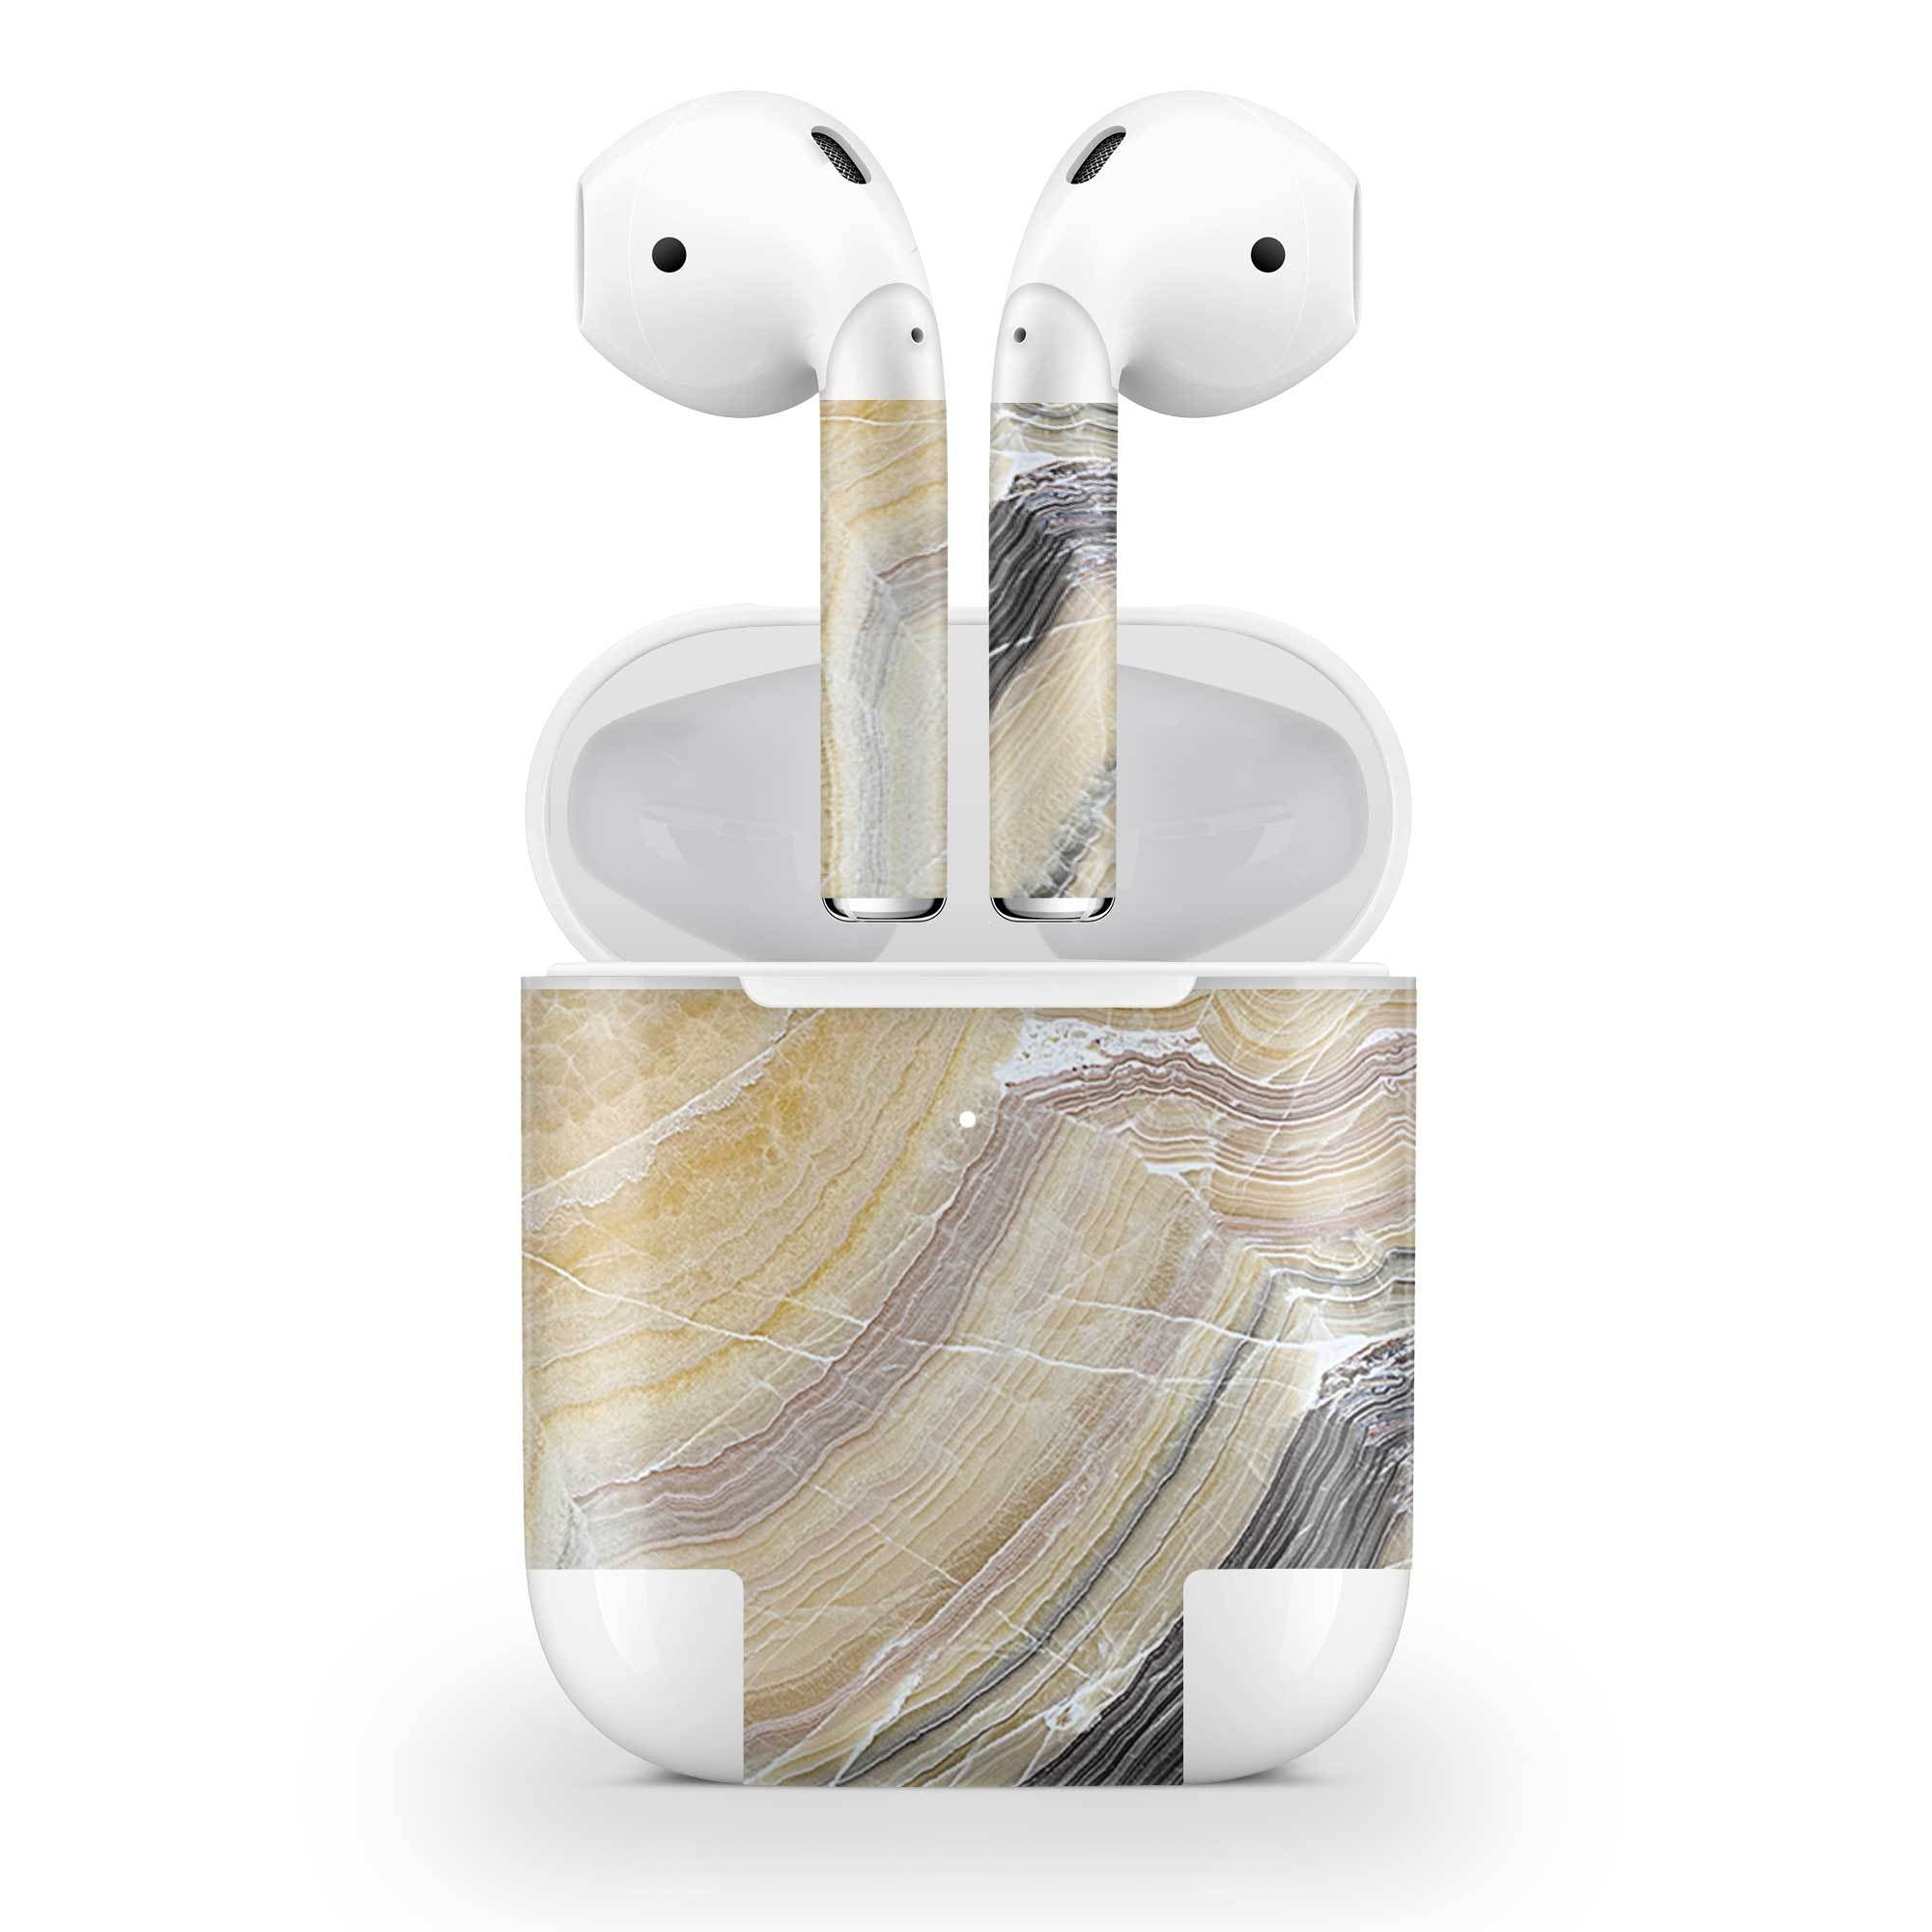 Butter Marble Skin AirPods Wireless Charging Case